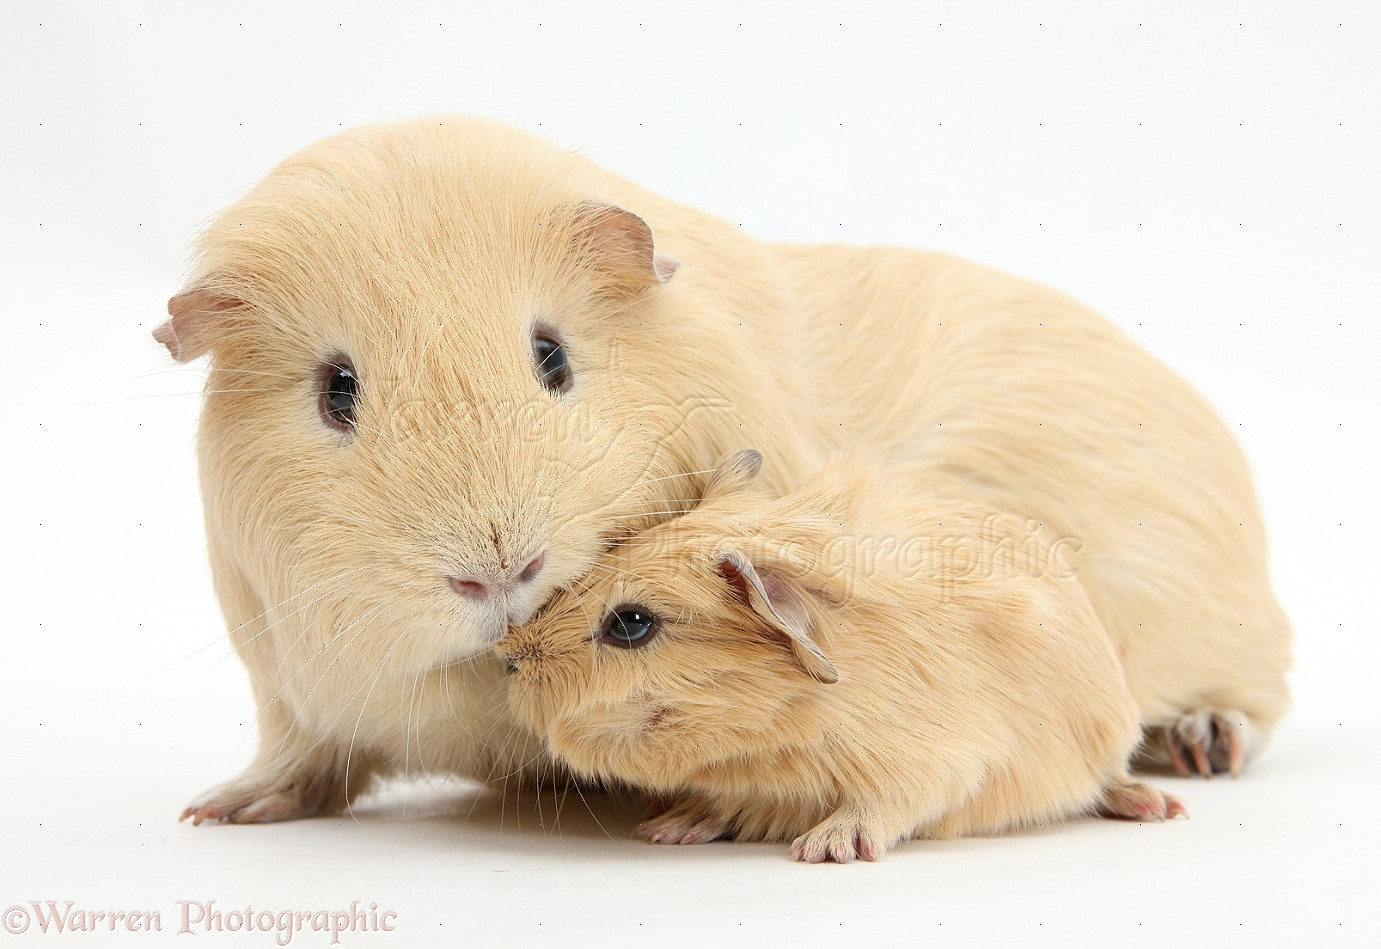 WP27495 Yellow mother and baby Guinea pigs.